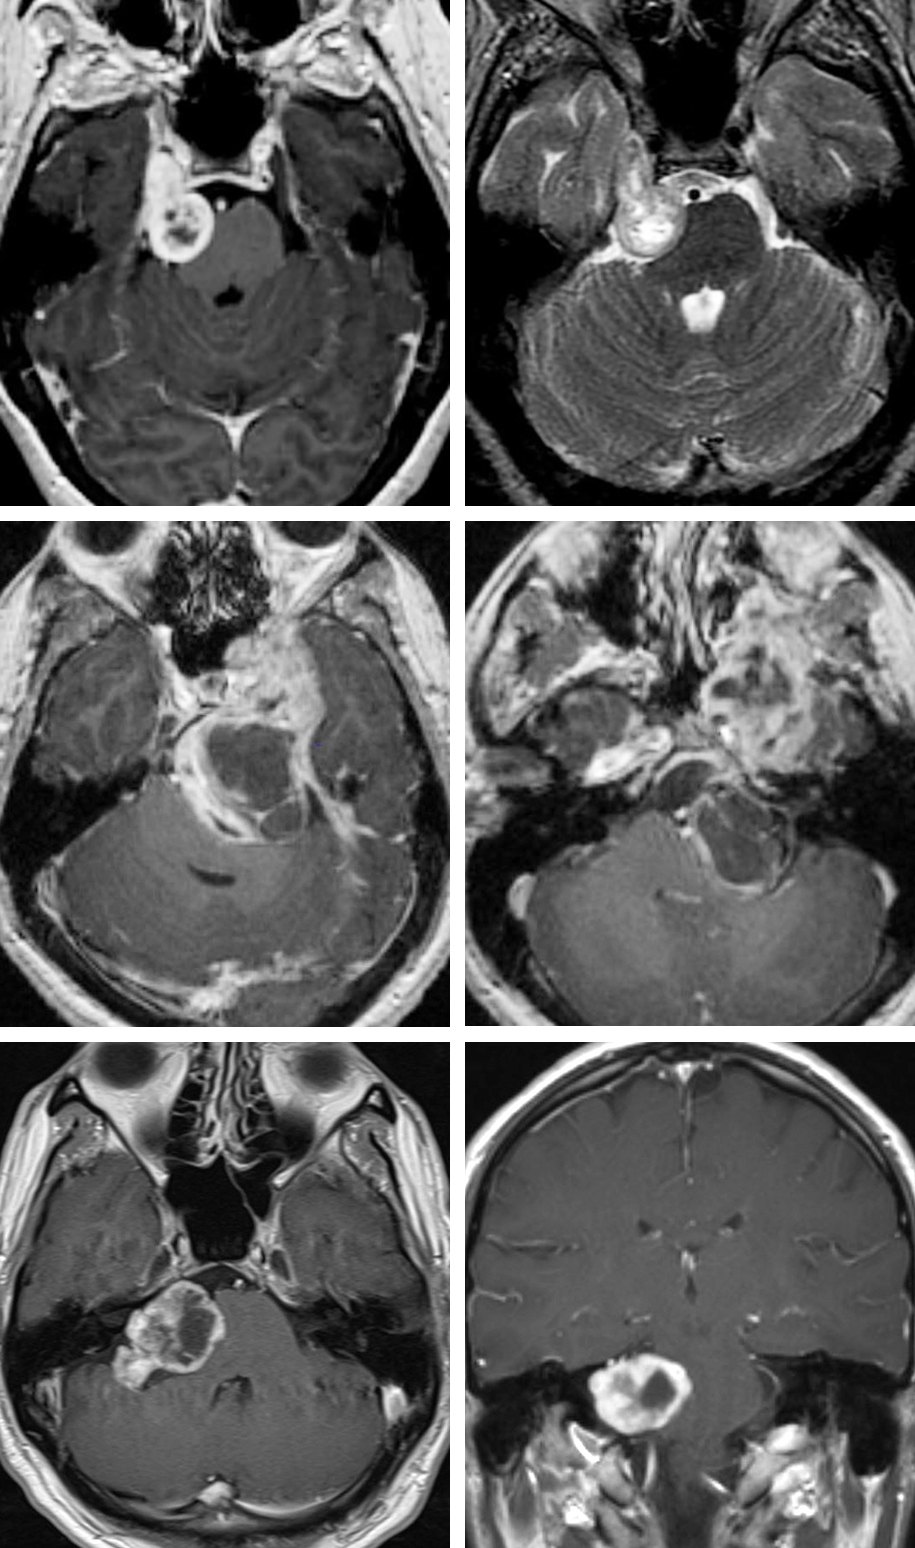 Figure 1: Schwannomas present as well-circumscribed, heterogeneously enhancing lesions that are isointense or hypointense on T1-weighted and hyperintense on T2-weighted images. They do not harbor the dural tail associated with meningiomas. Enlargement of the internal auditory meatus signifies a vestibular schwannoma. The MR images of the upper row indicate a classic trigeminal schwannoma with extension into the Meckel's cave. The middle row demonstrates a giant tumor with intraorbital and extracranial or infratemporal extensions. The bottom photos show an isolated trigeminal schwannoma within the cerebellpontine angle.